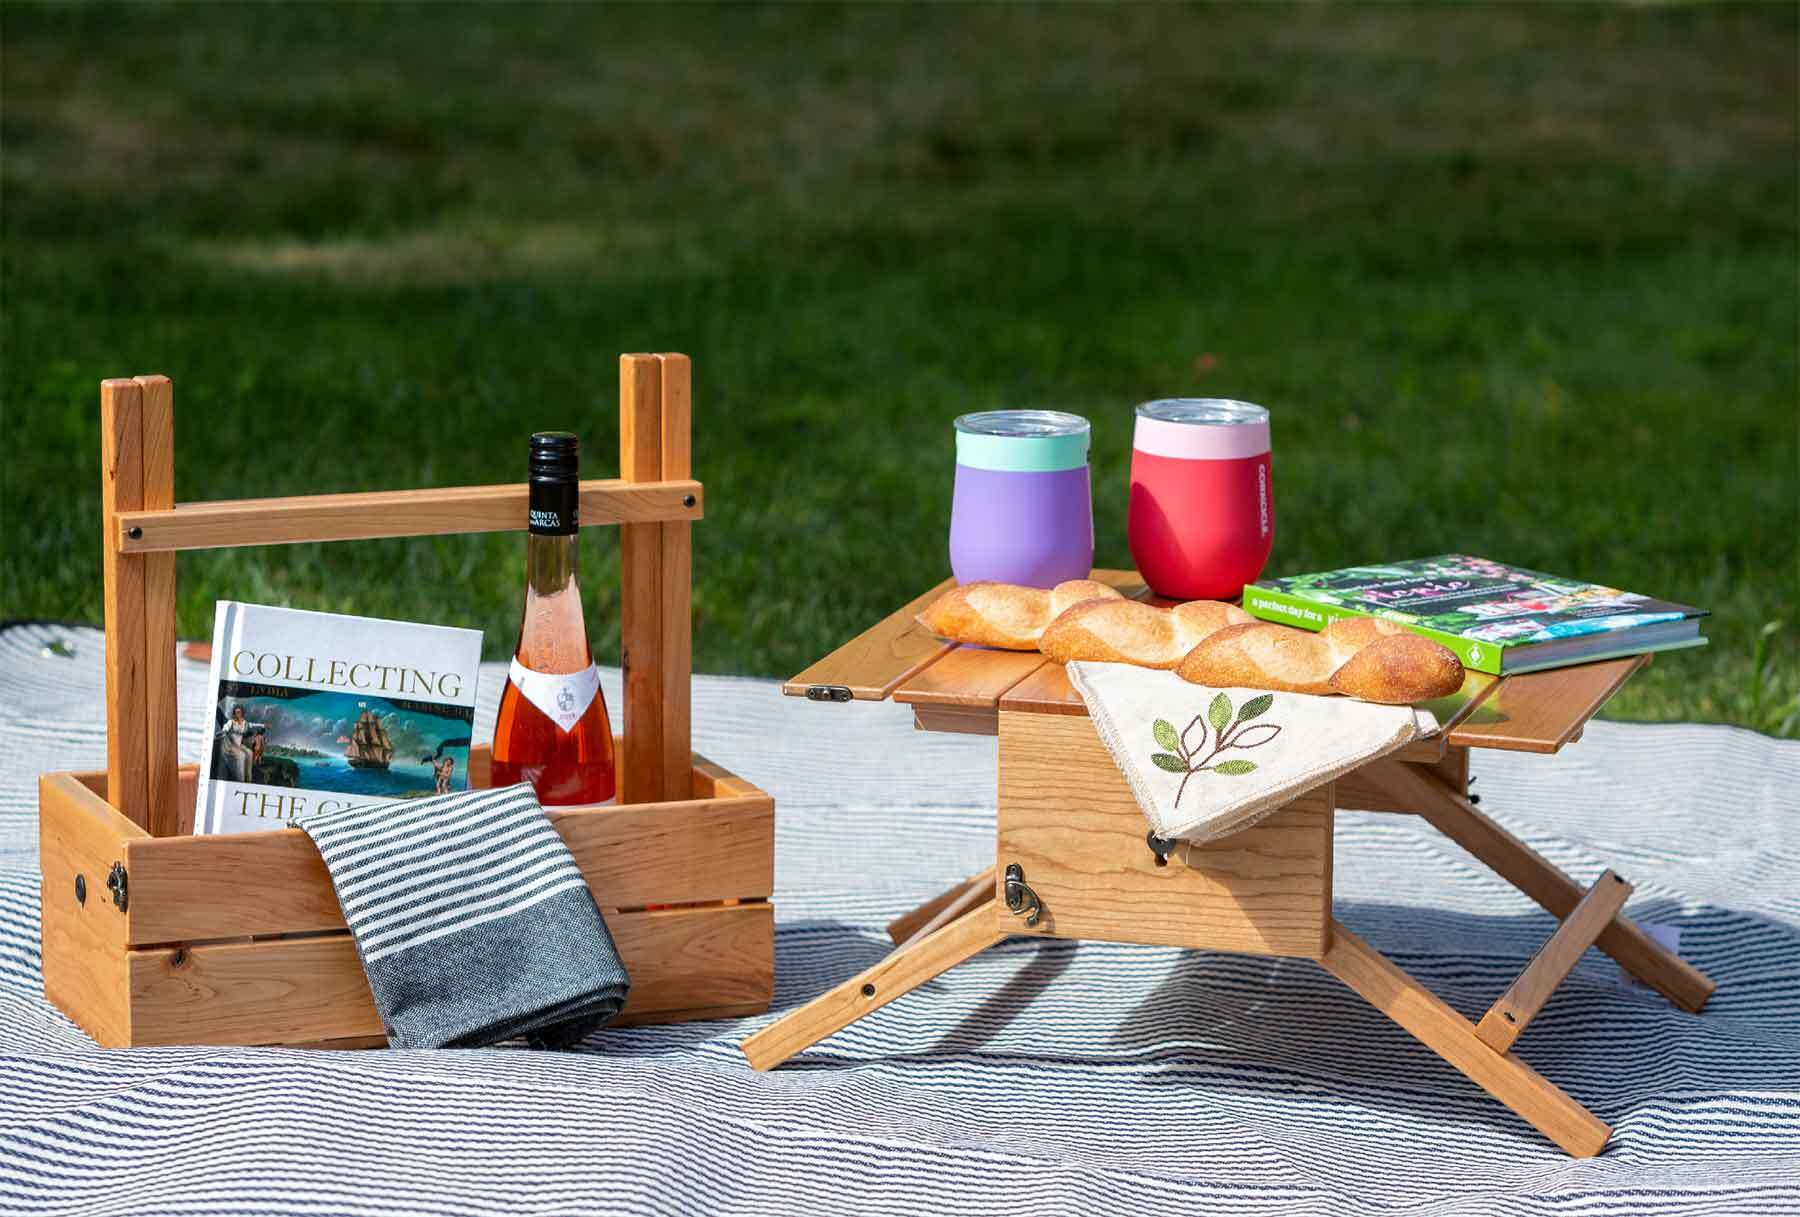 A picnic set out on a white blanket